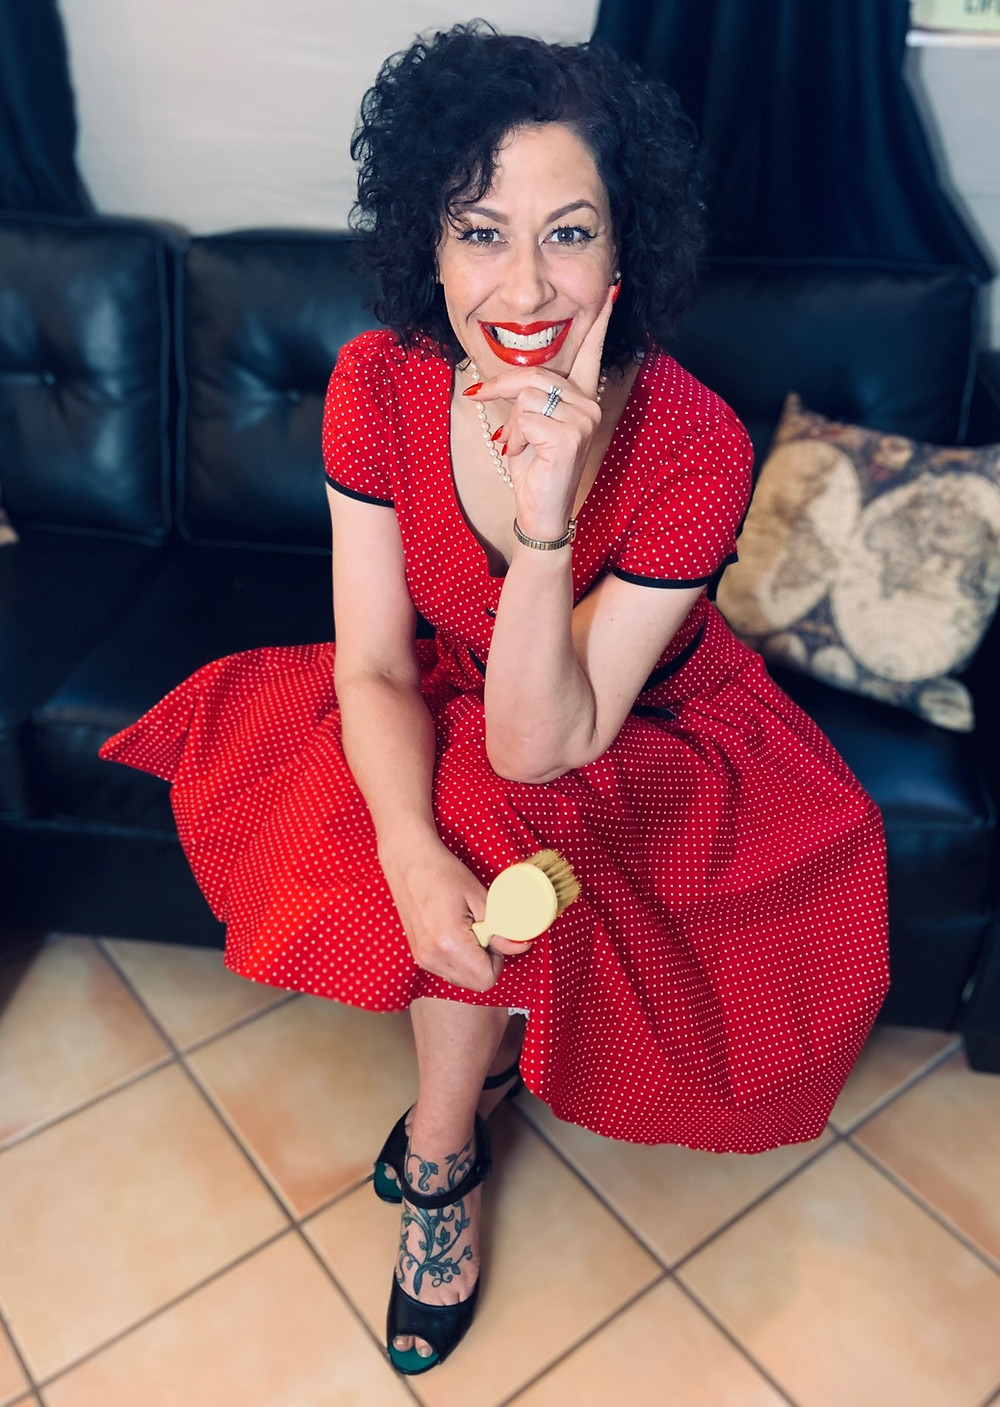 From a recent 1950's themed photo shoot, Miss Chris is seen here with her Bakelite hairbrush and red/white polka dot dress.